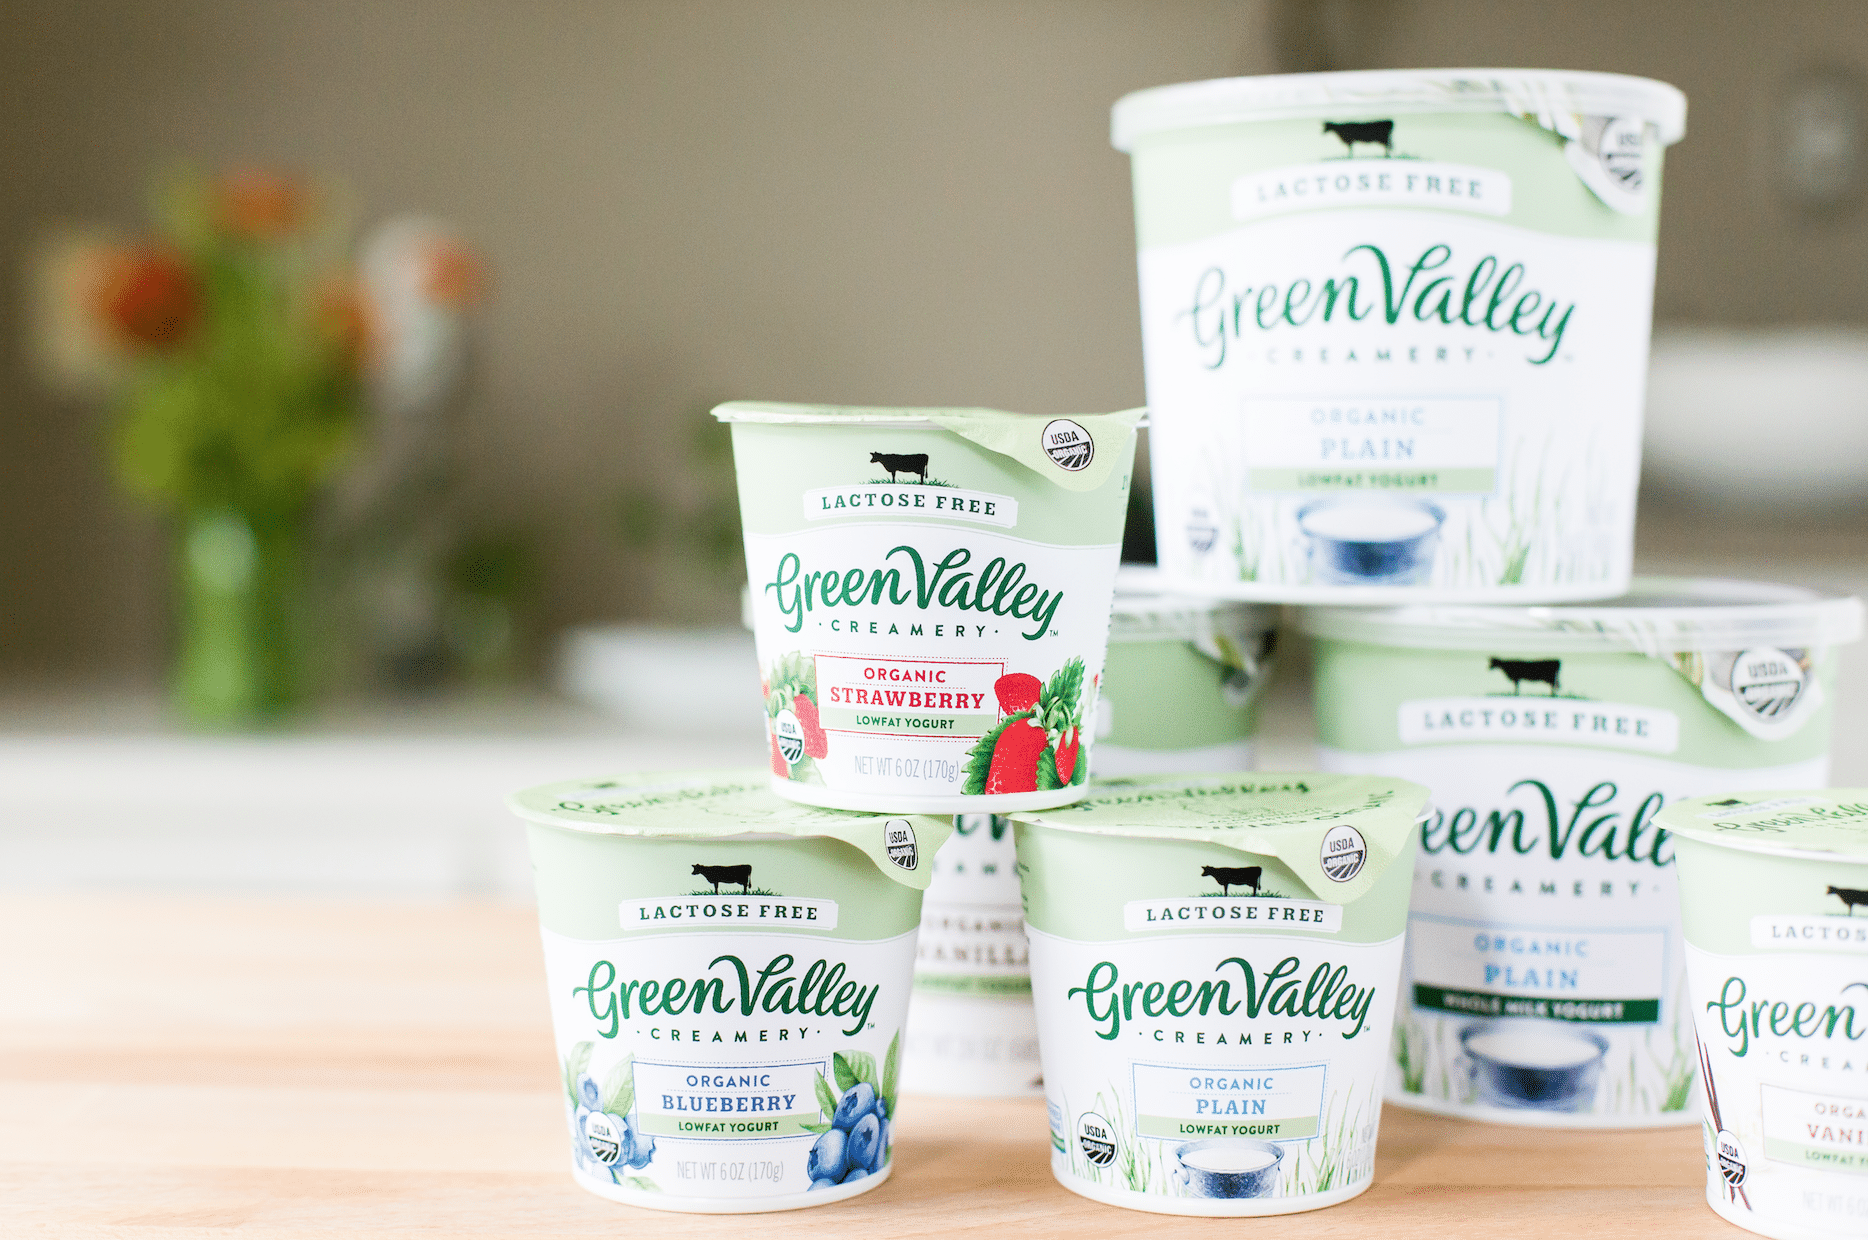 Green Valley Organics Changes Name to Green Valley Creamery